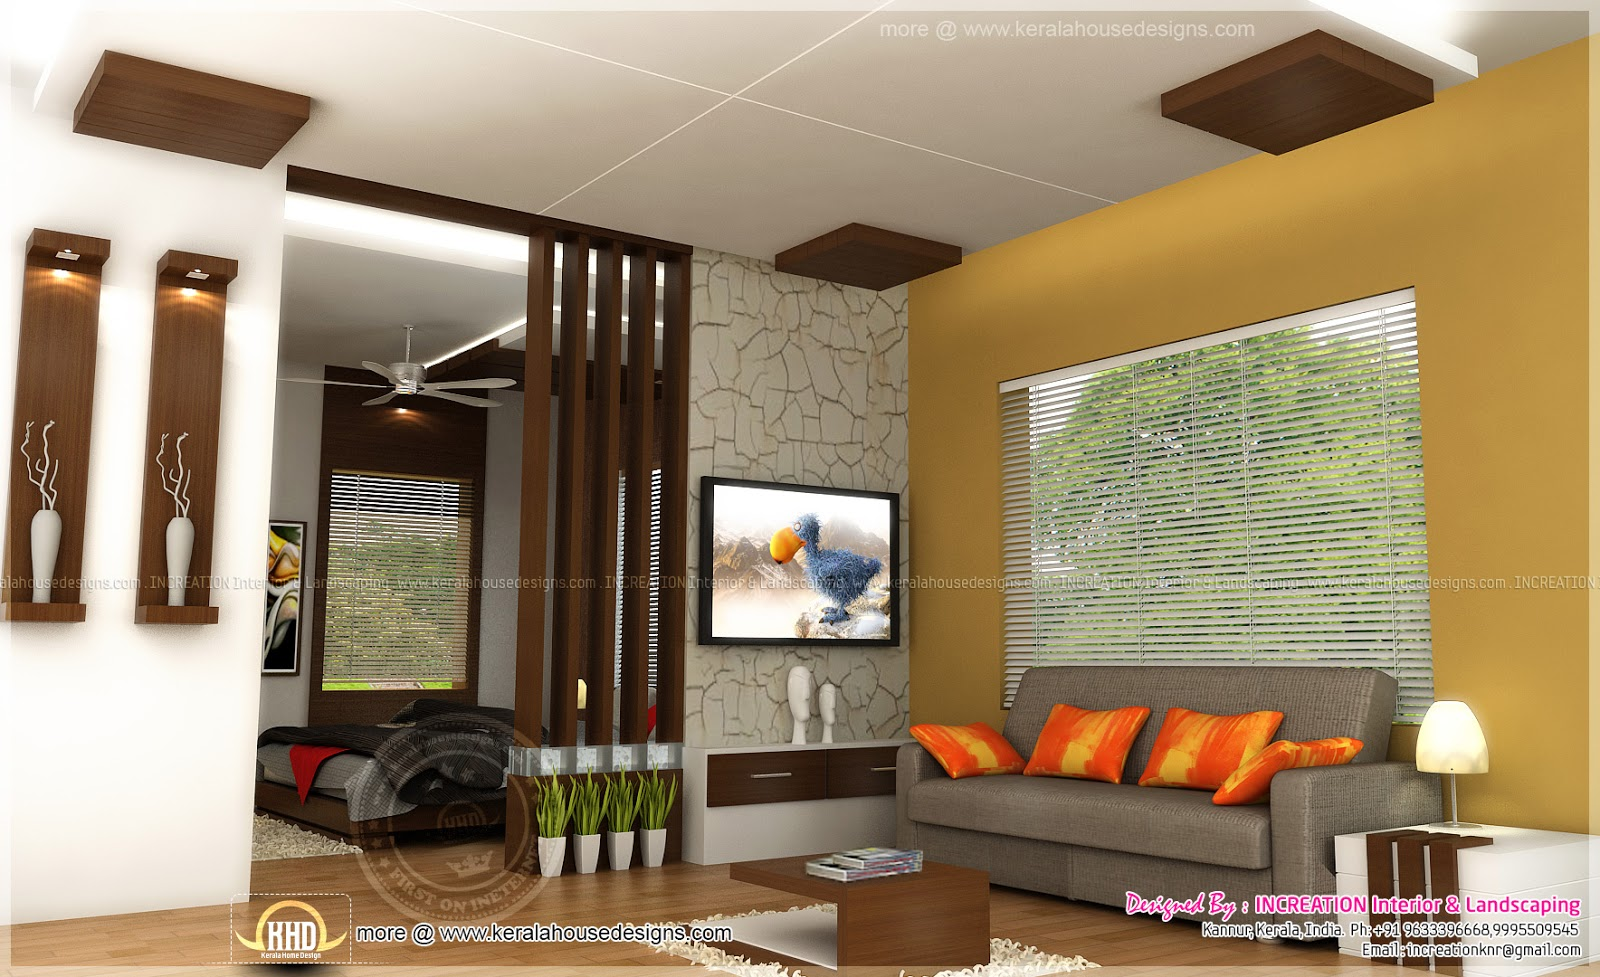 Interior designs from kannur kerala kerala home design for Interior designs images